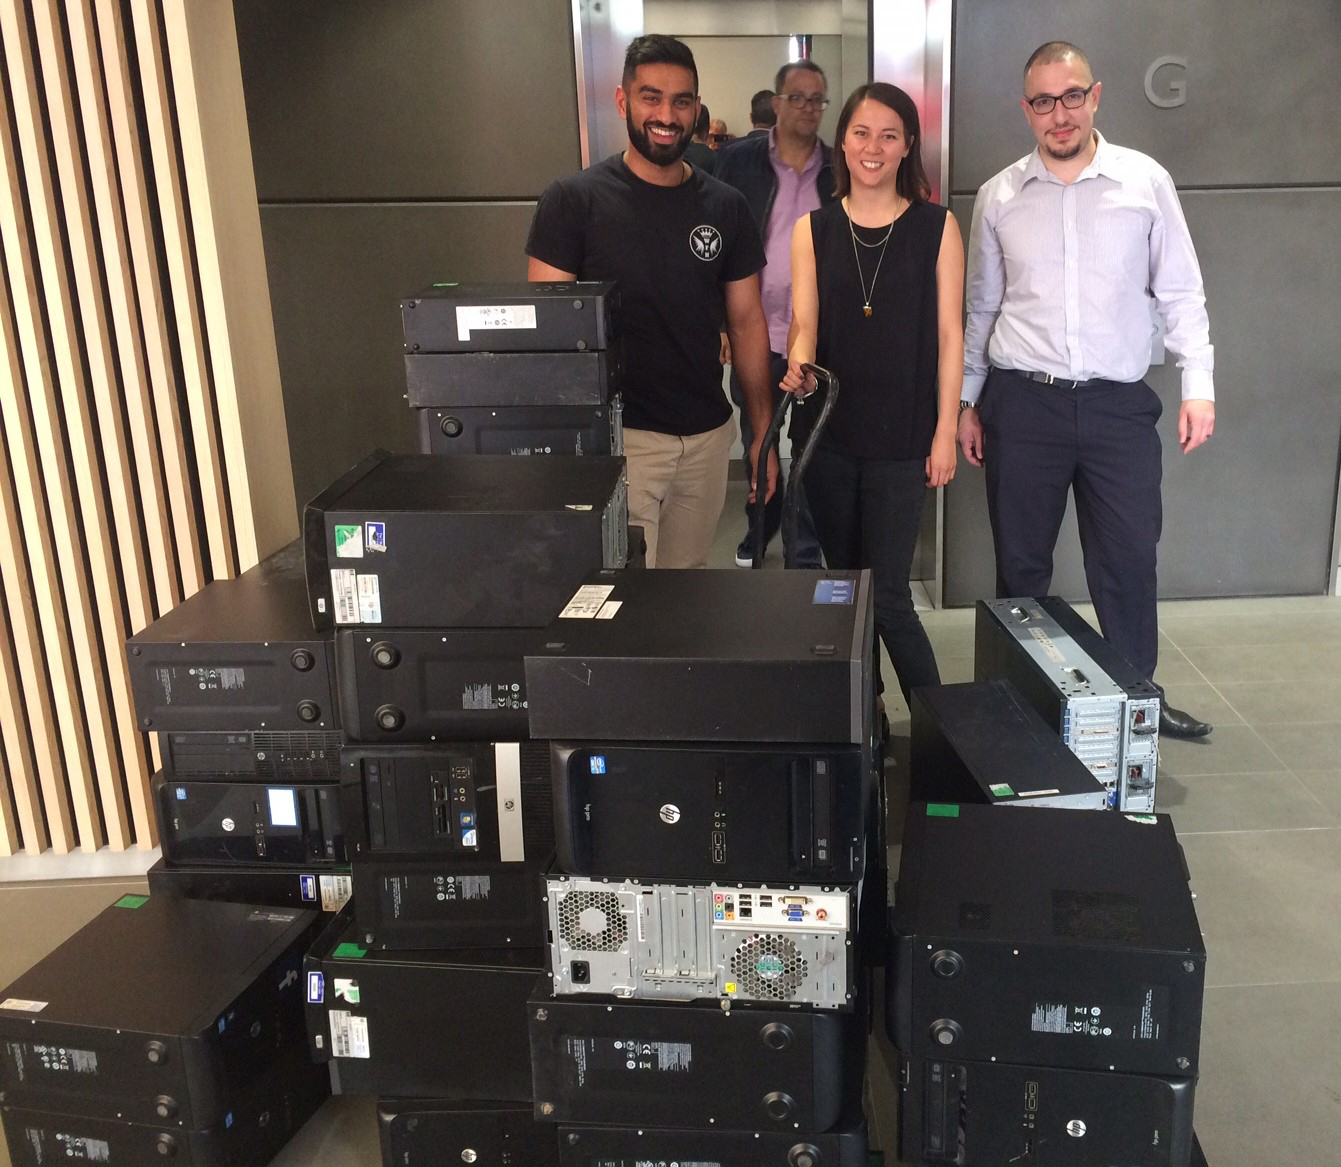 A group of supporters of The Turing Trust with donated IT equipment.